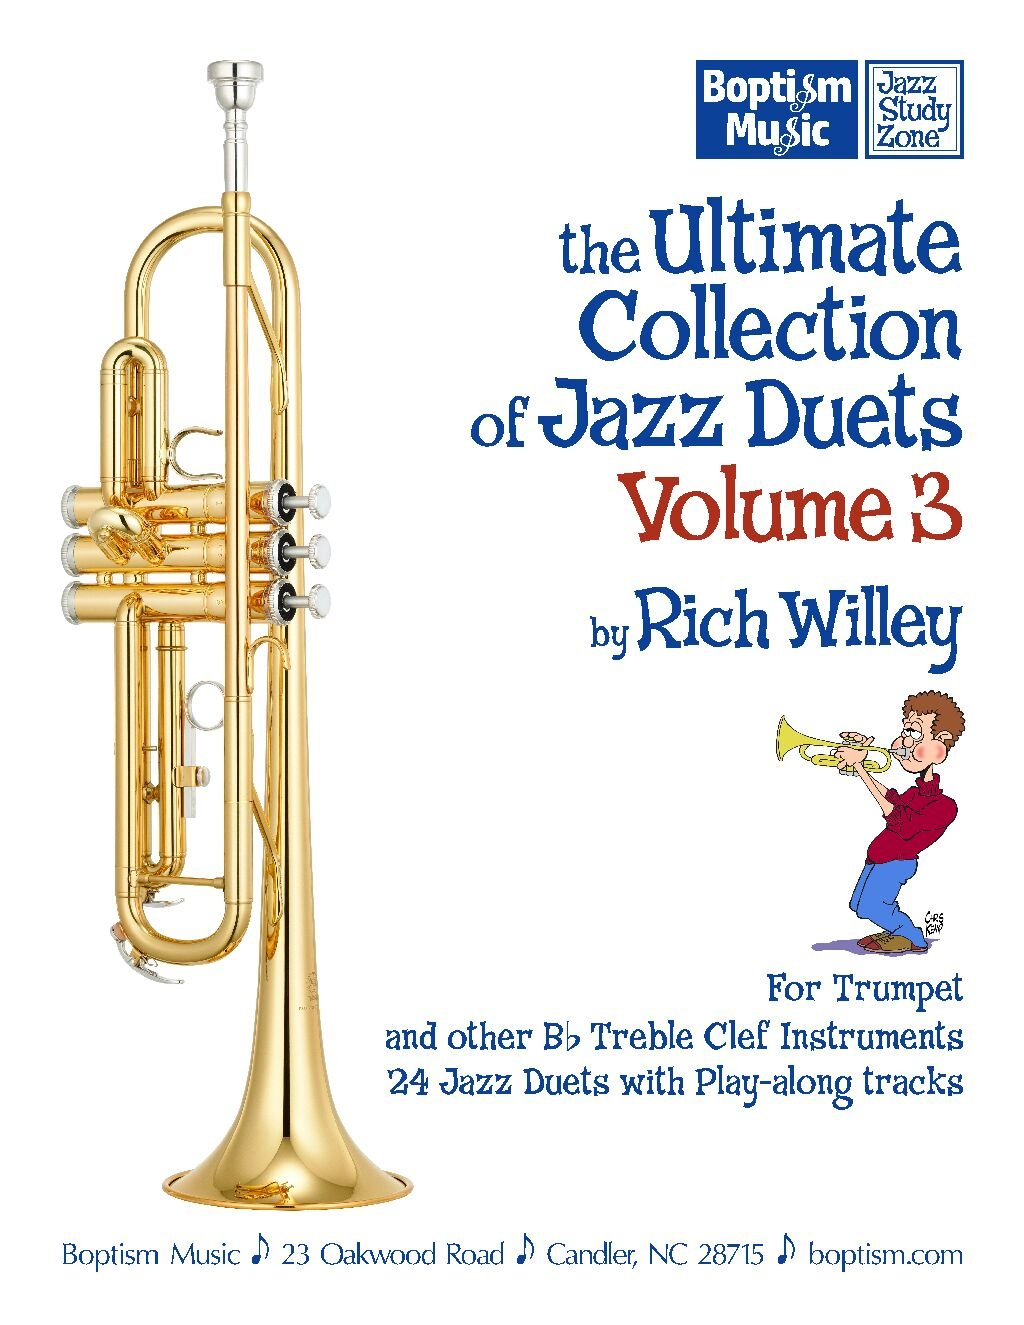 Download 'The Ultimate Collections of Jazz Duets, Volume 3 (for trumpet and other Bb treble clef instruments), by Rich Willey ebook